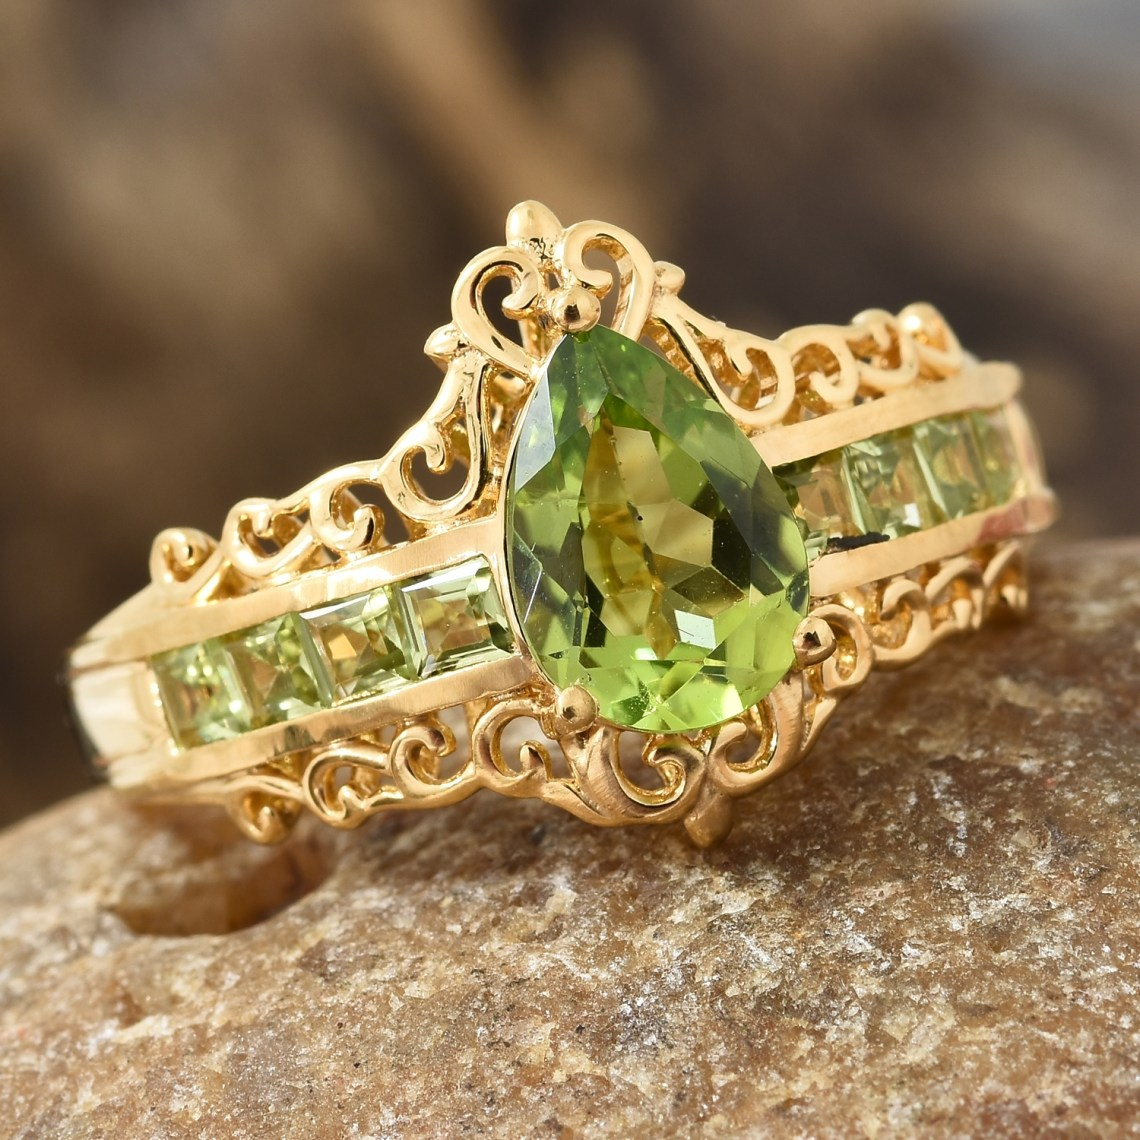 Peridot birthstone ring in yellow gold vermeil.